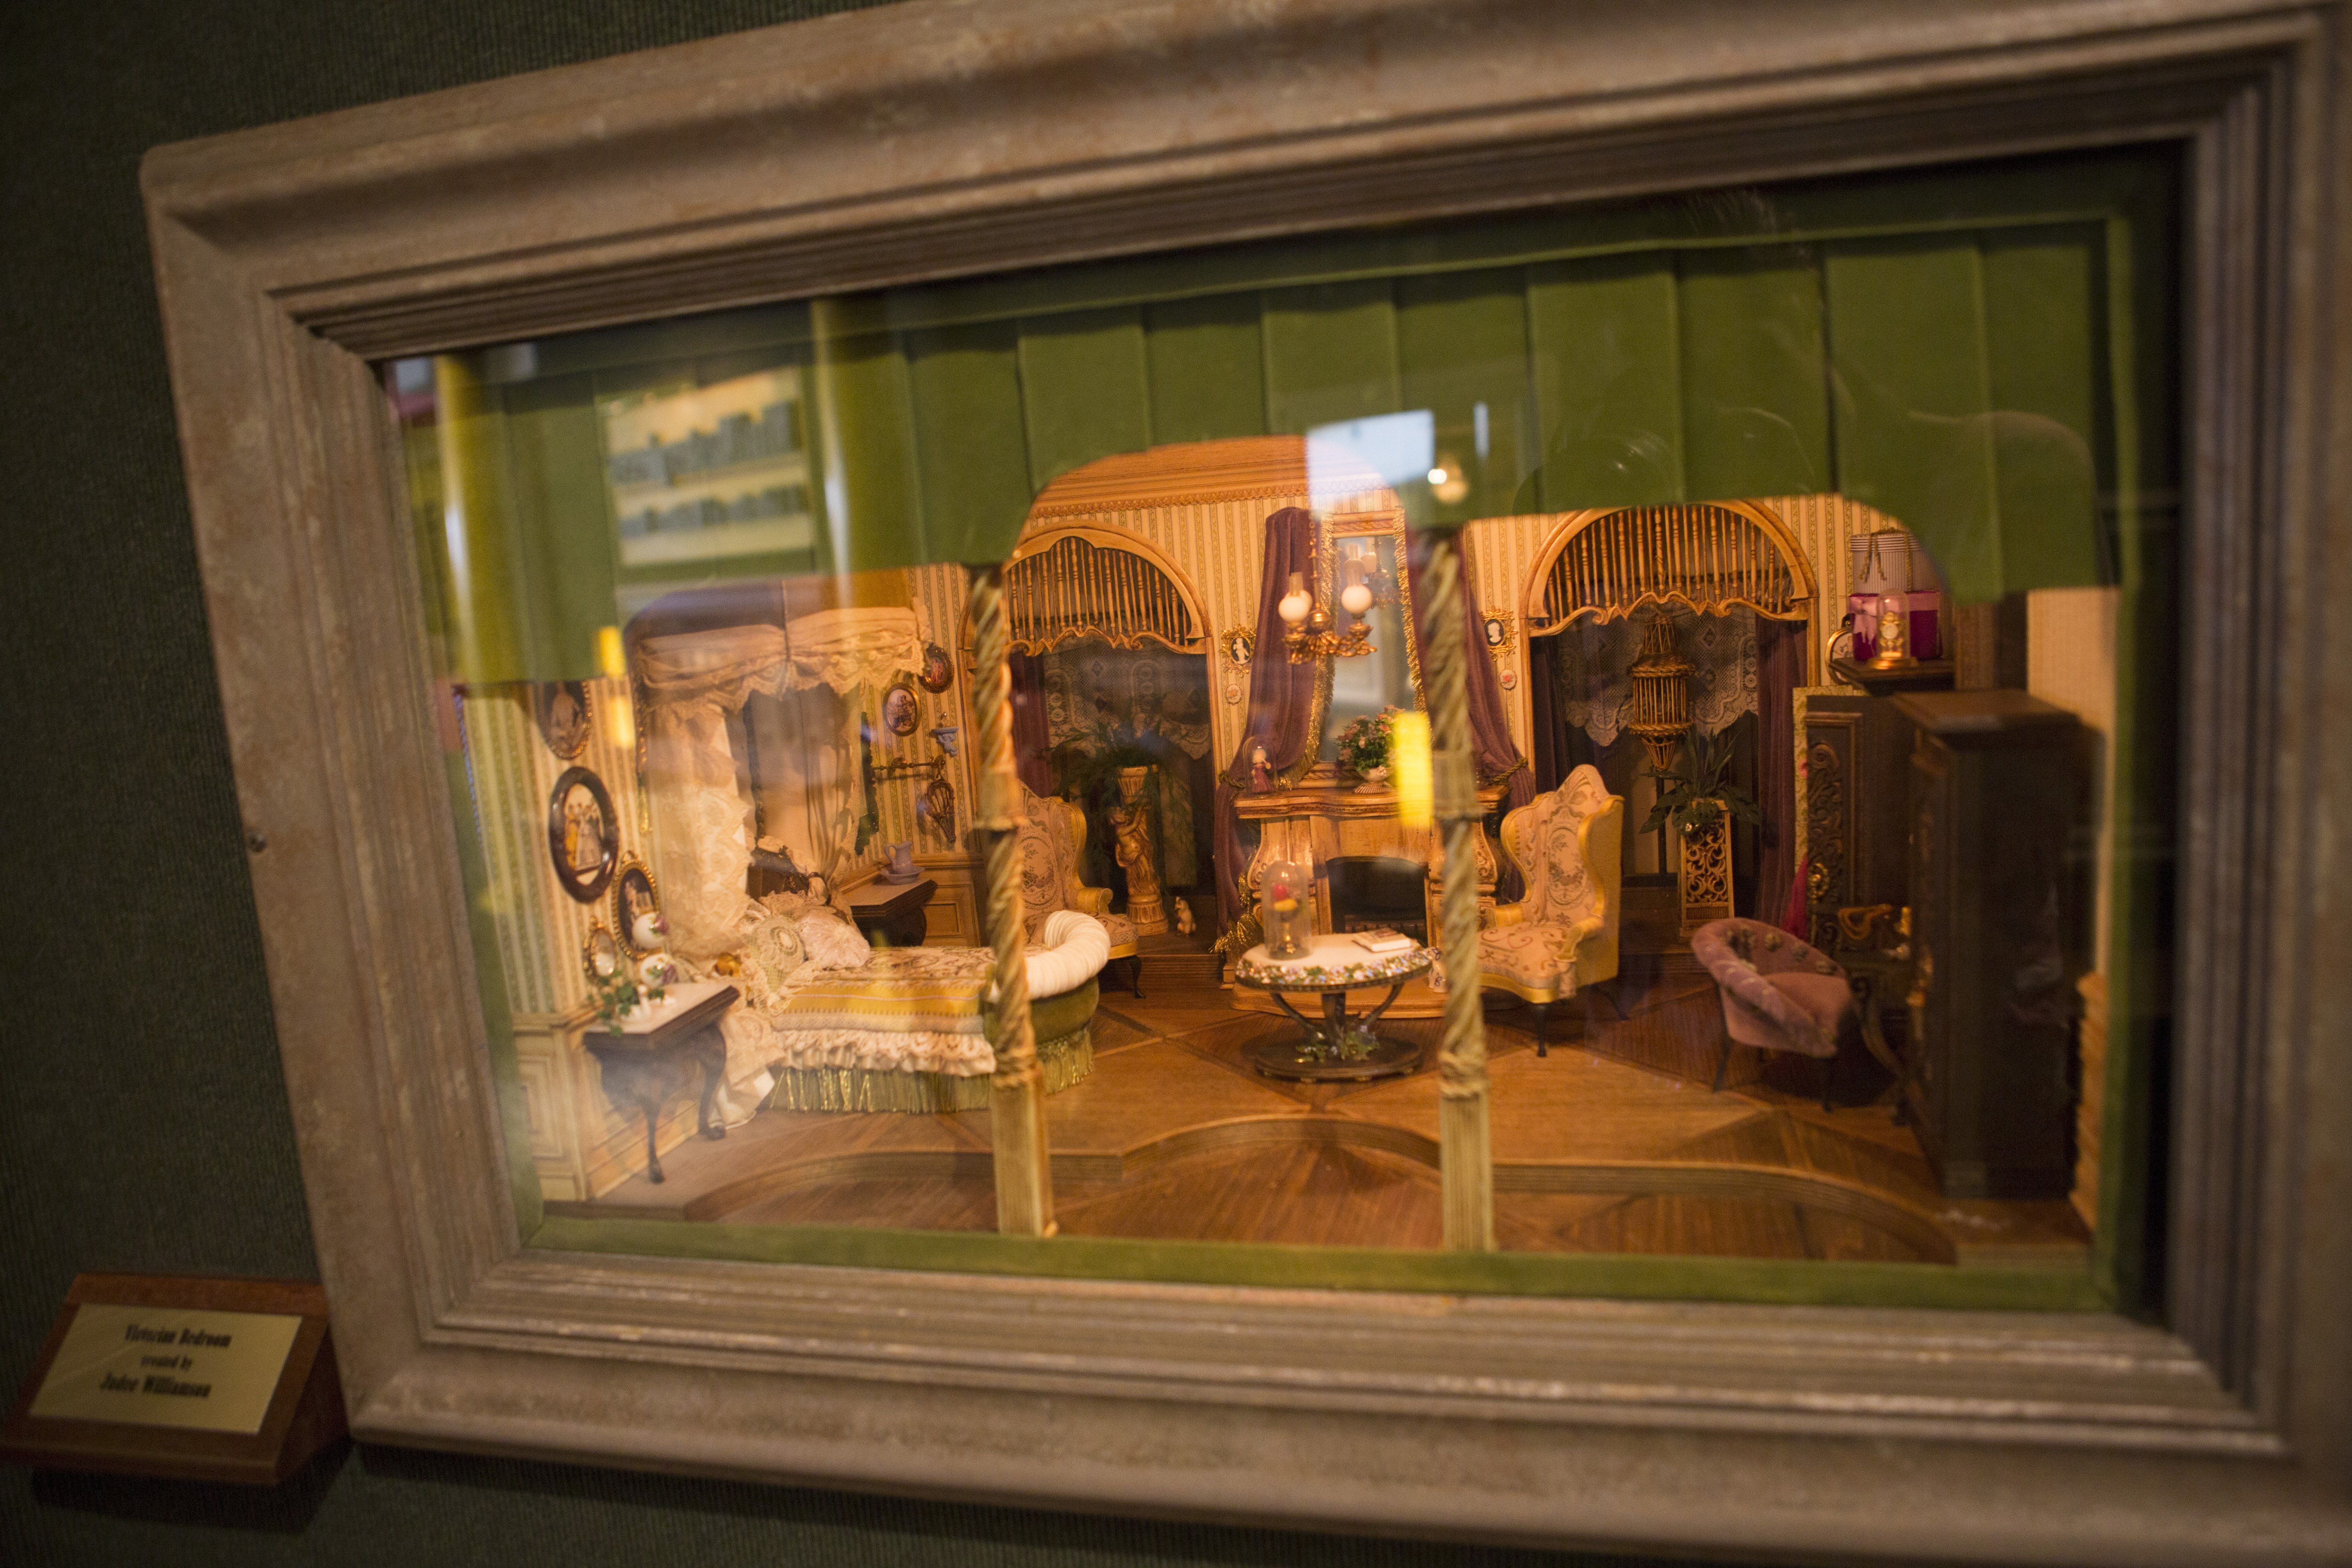 Indianpolis_Childrens_Museum-001_6